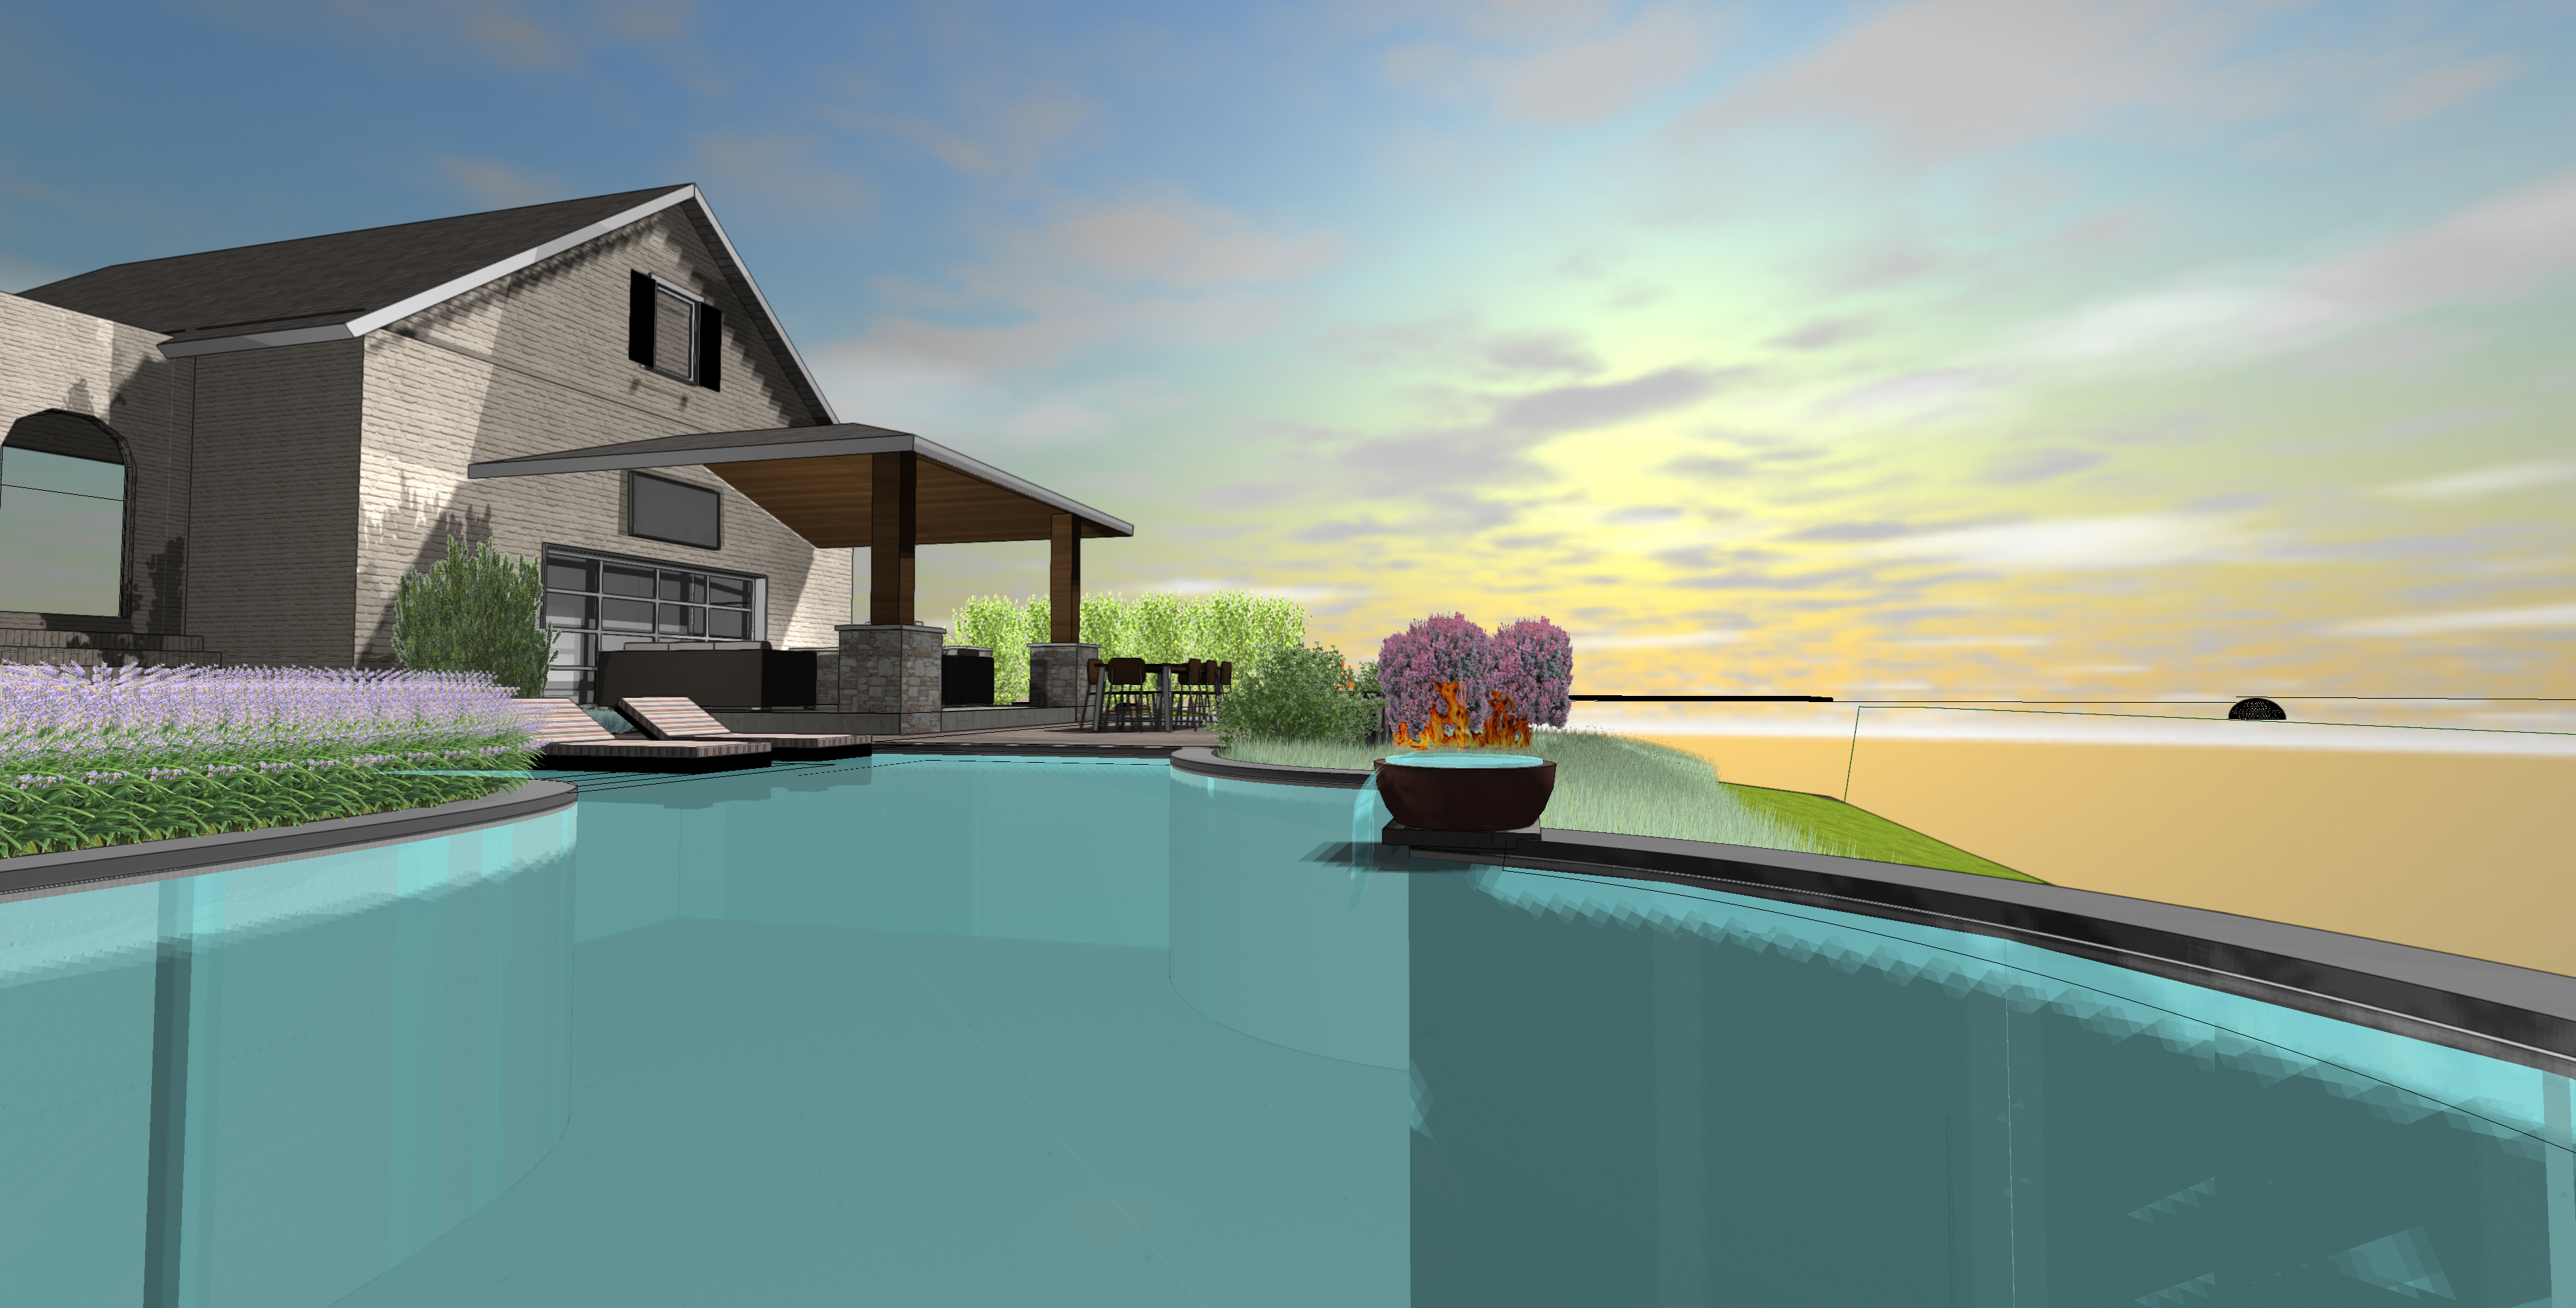 3D Pool Design View